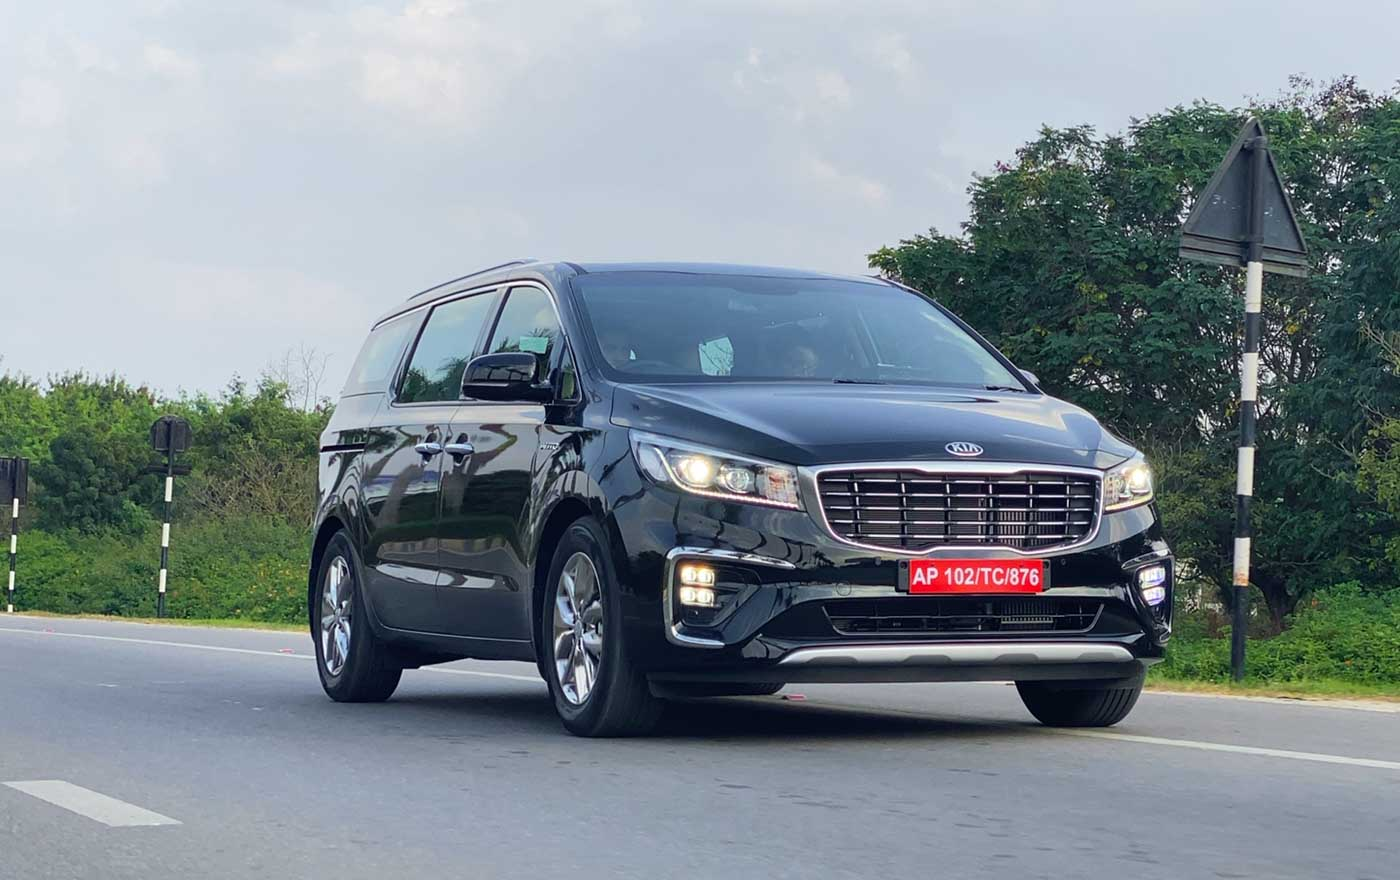 Kia Posts Highest Monthly Sales In Jan 2020, Thanks To Seltos & Carnival